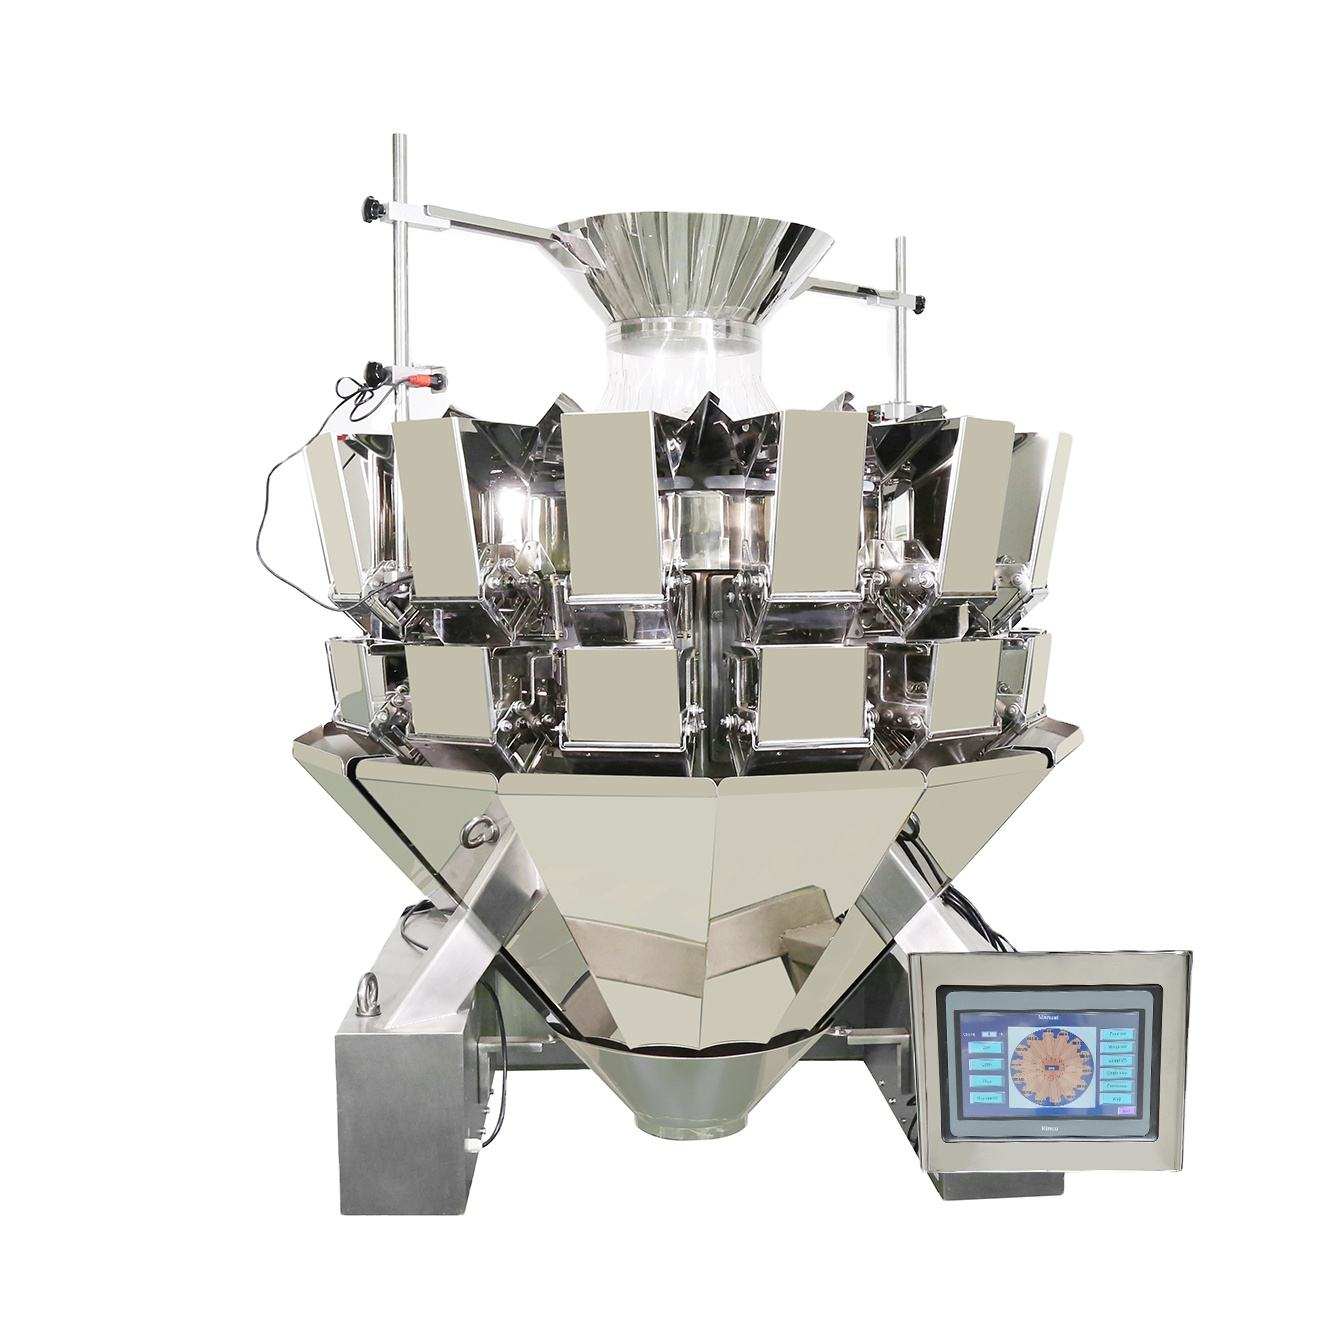 standard 14 head weighing multihead weigher for snacks seeds nuts fish hardware frozen food granule tablet and tea leaves